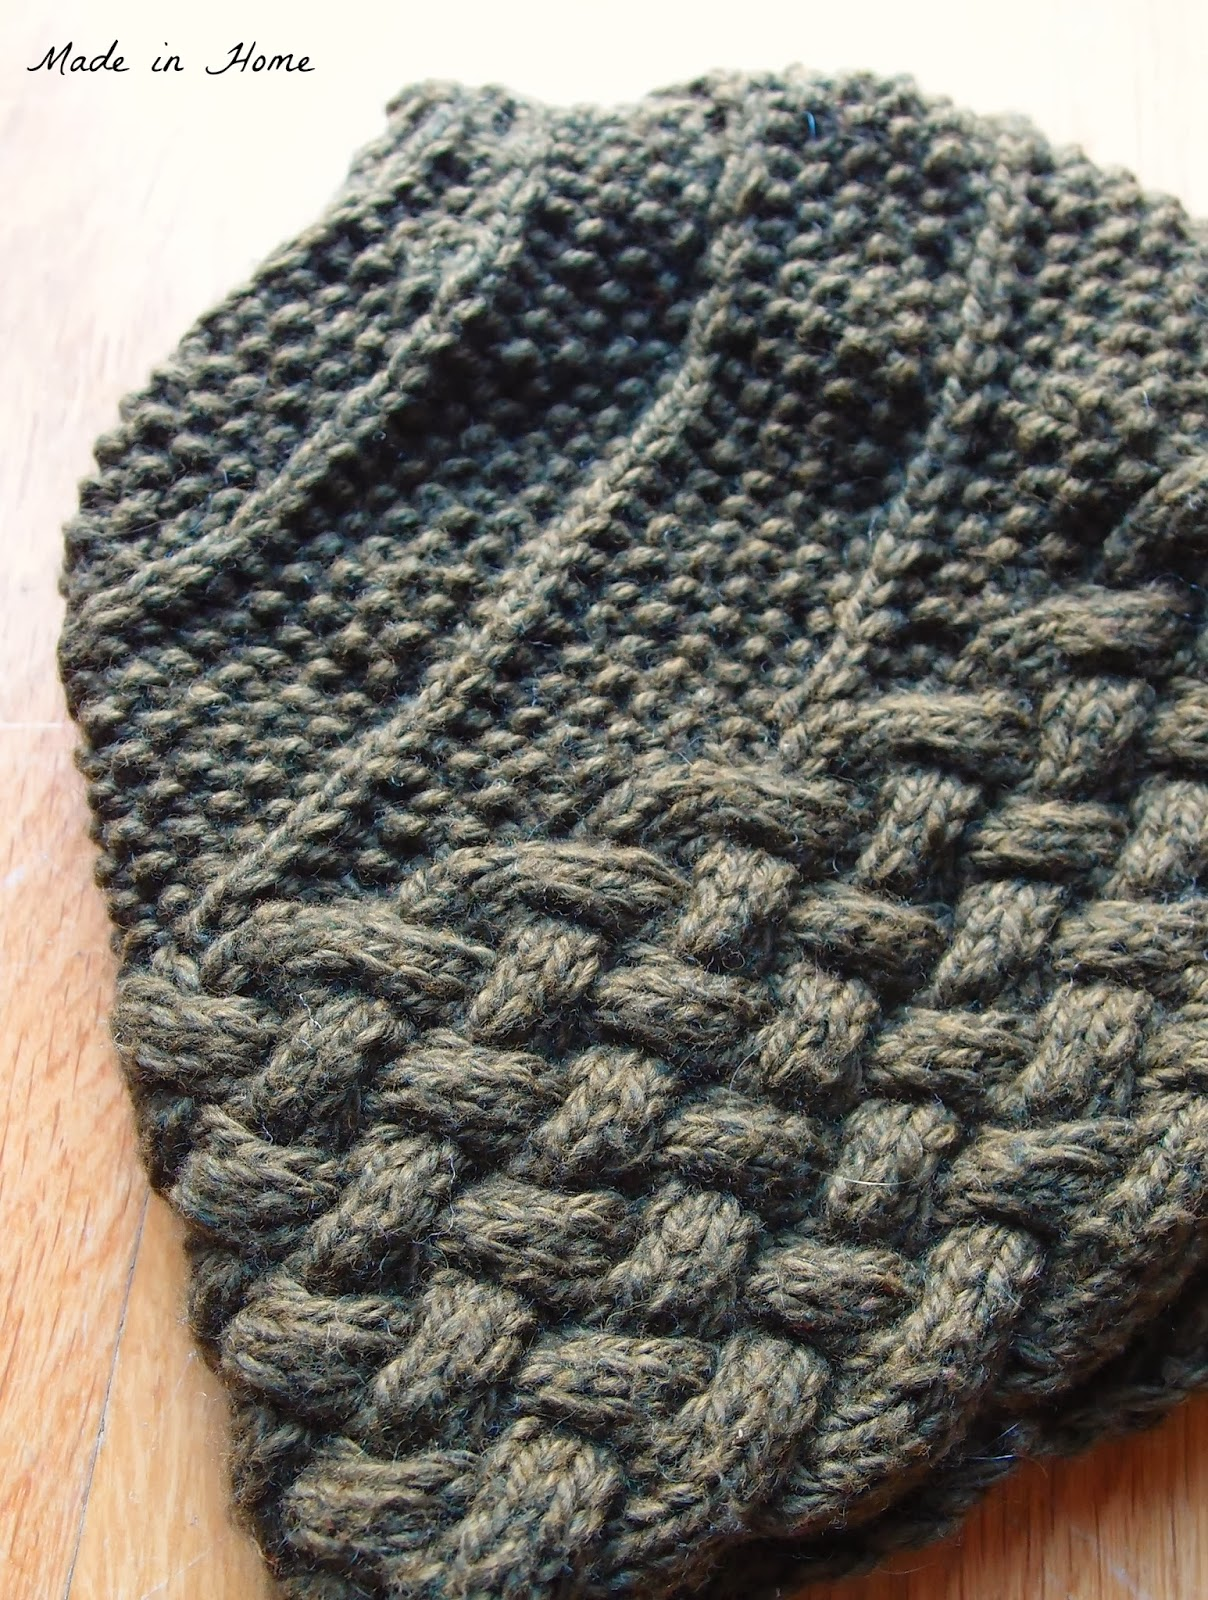 Knitting Pattern For Acorn Hat : Made in Home: Acorn Beanie Hat A finish {Knitting}